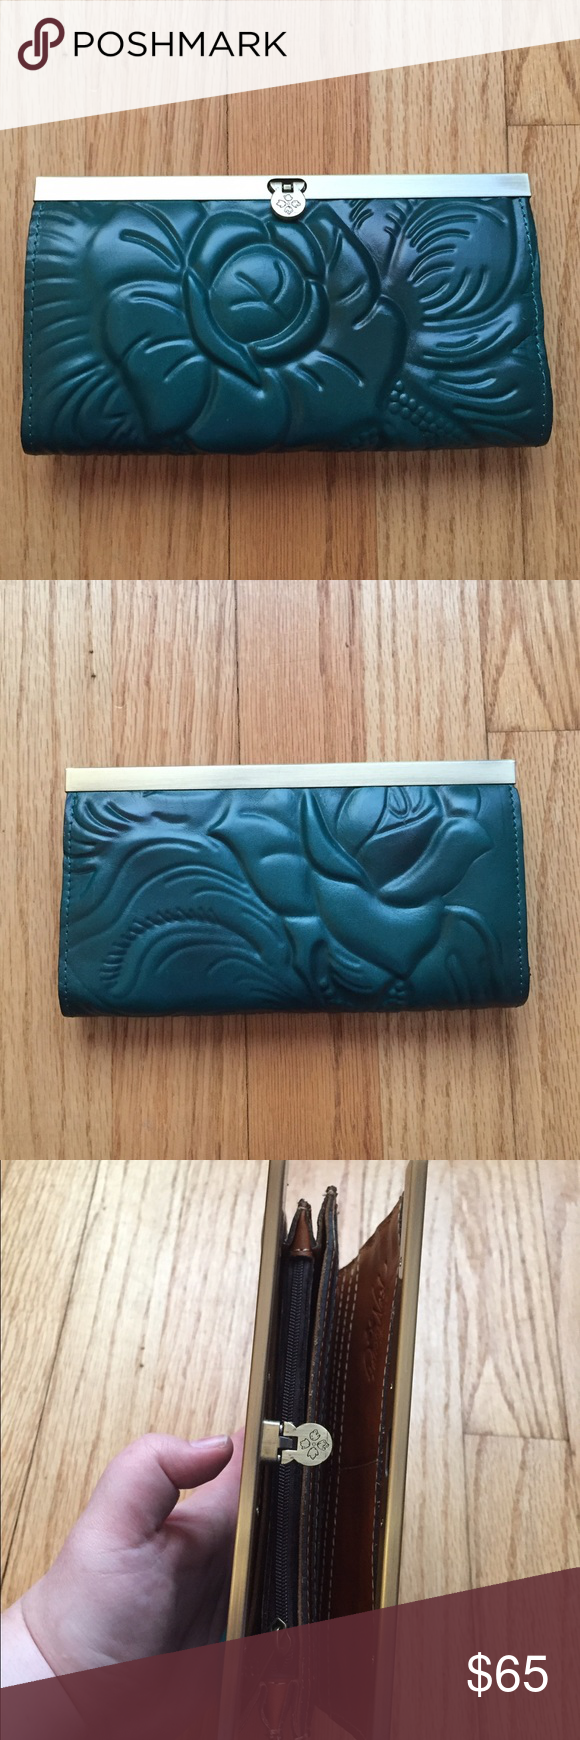 Patricia Nash Dark Teal Textured Wallet Excellent condition! There are some imperfections but they are very, very minor and they are pictured! This is such a unique wallet all around! The gorgeous teal/blue-green color and textured floral detail on this smooth leather are amazing! And the shape and closure will not be found in just any wallet! 10 card slots. 4 large pockets and 1 zipper pocket inside. Length: 7.5 inches. Height: 4.25 inches. Depth: 1 inch. No lowballs please! Patricia Nash…